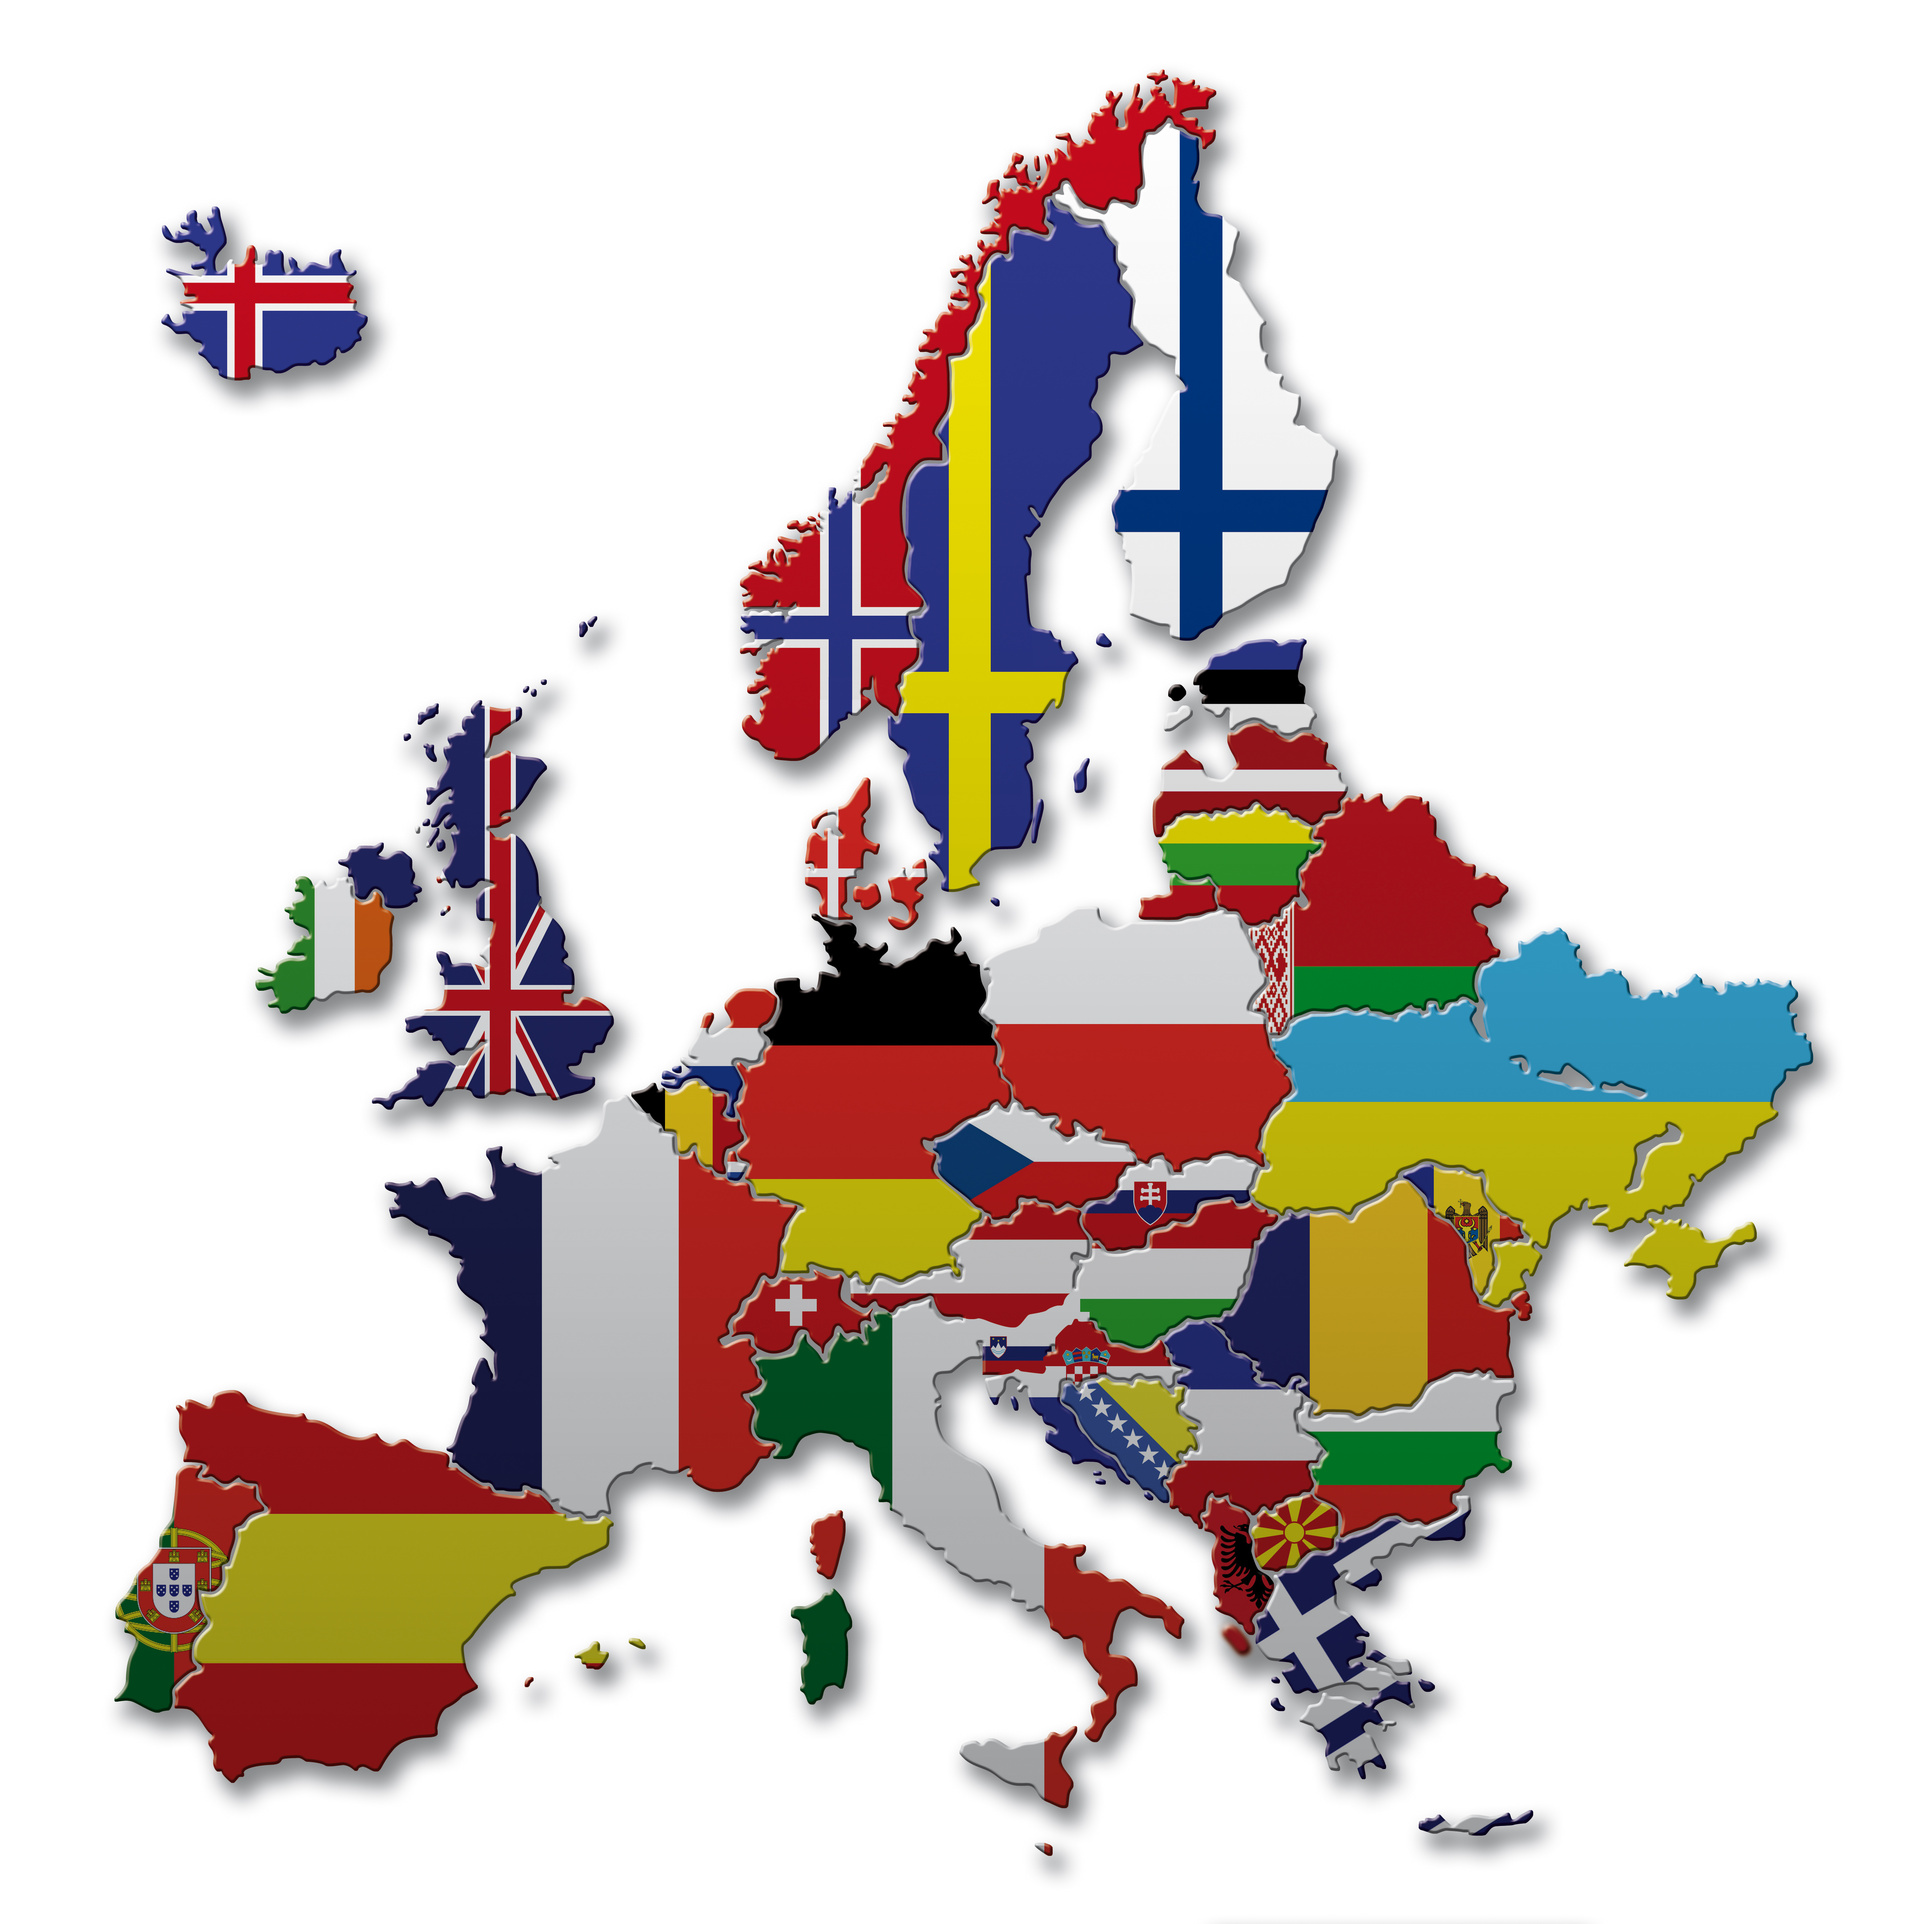 Europe map flags — ENISA on create a pushpin map, bangladesh map, home map, pin map, general map, city map, orientation map, continent map, police map, strategy map, west africa map, game map, calendar map, food map, armenia map, class map, peru's map, economy map, church map, scroll map,